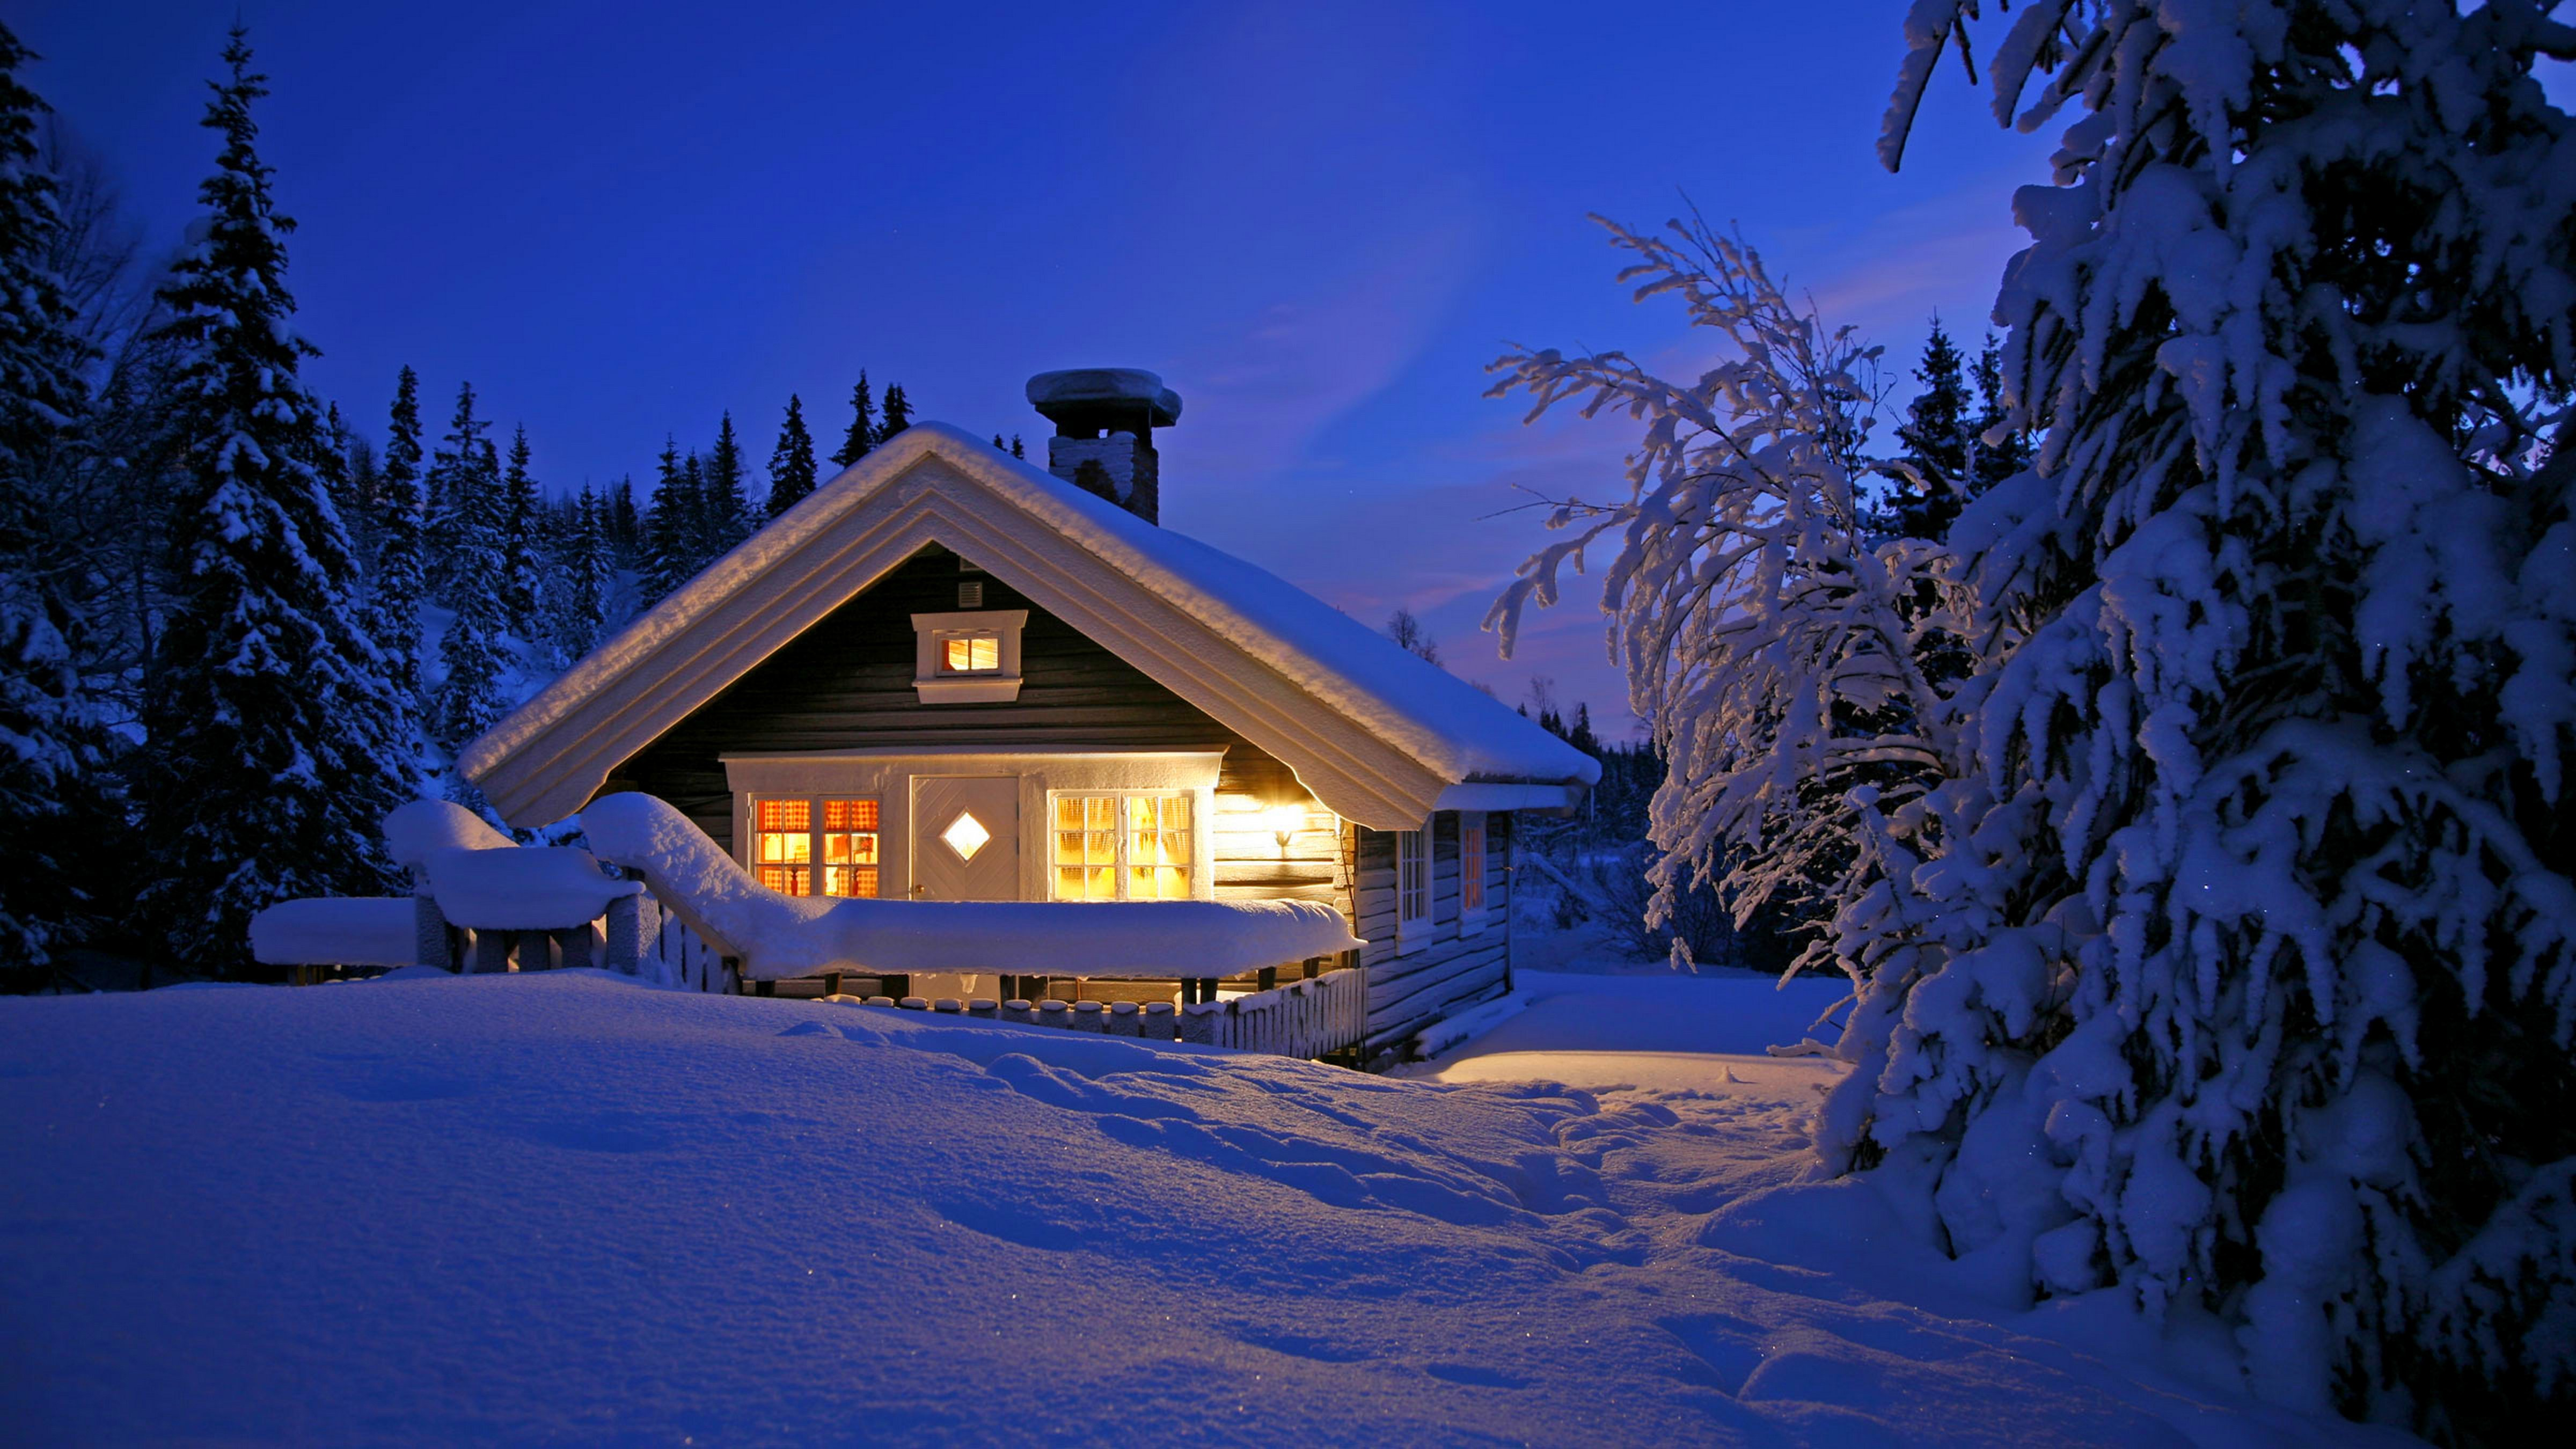 Christmas Covered Bridge, Alaska  № 1799644 без смс